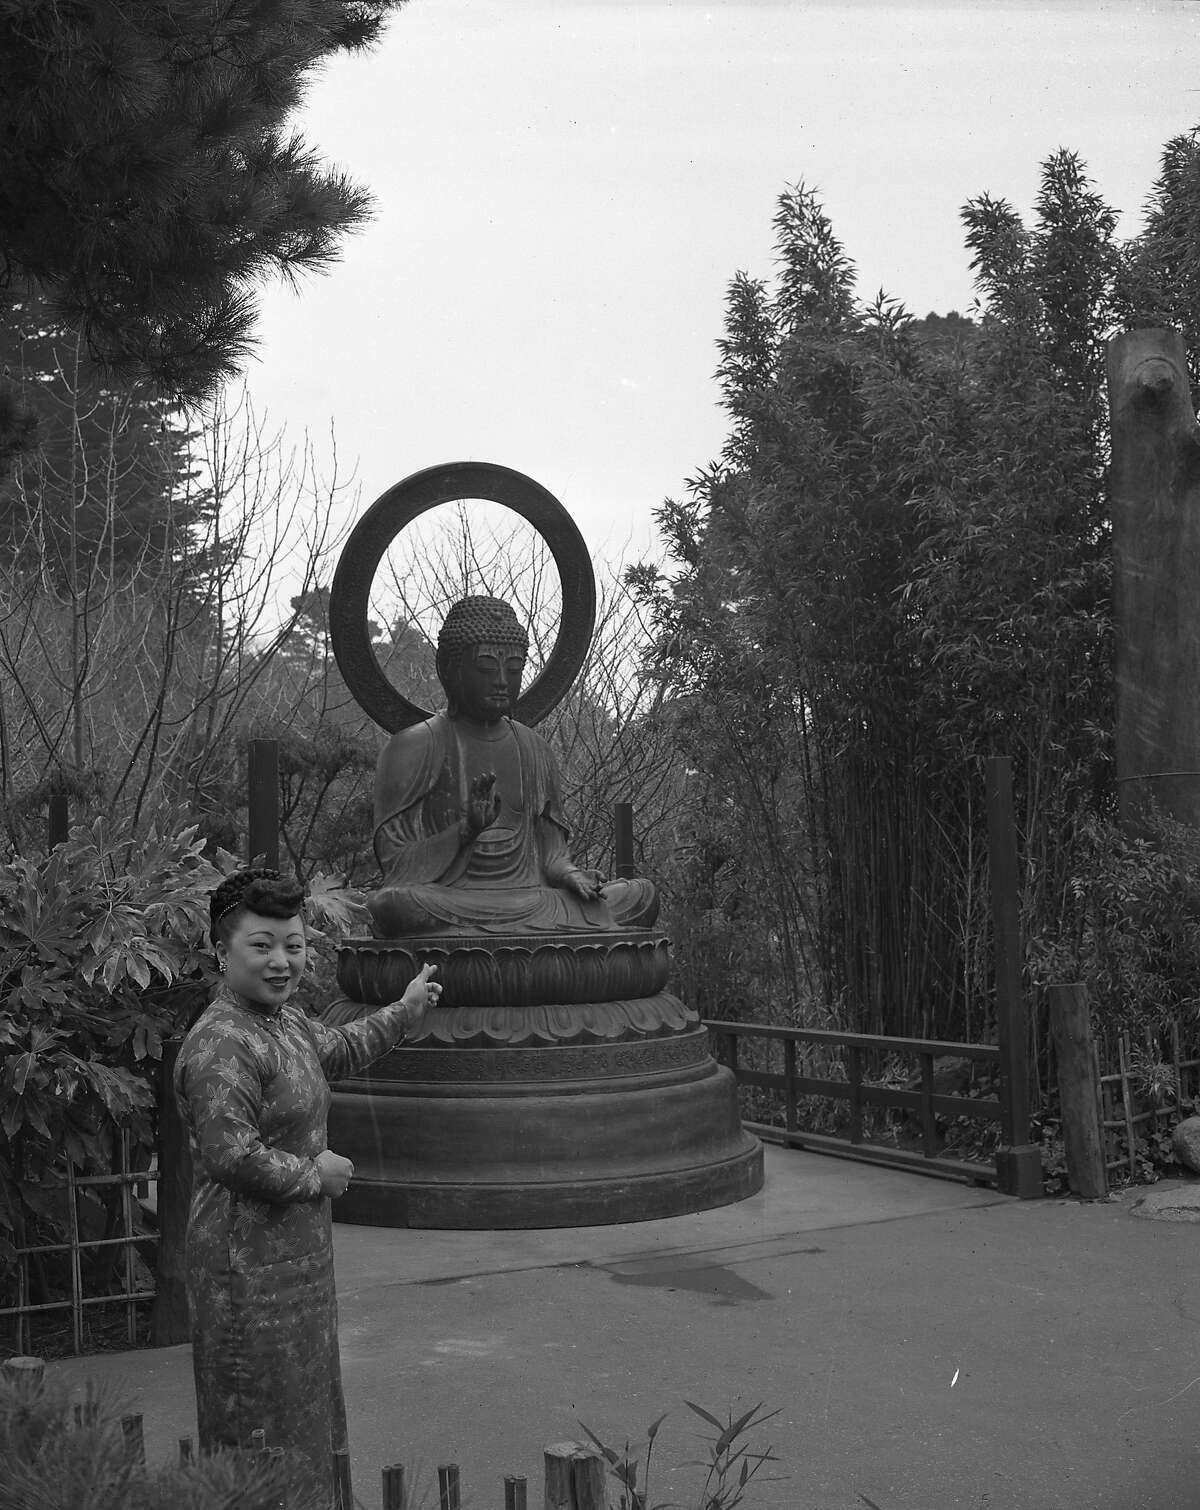 The Buddha at the Japanese Tea Garden in Golden Gate Park being installed in March 1949. It was a gift from the Gump family, and had been in their store for 15 years. The negative identifies the woman as Edna Lee photo dated 03/02/1949